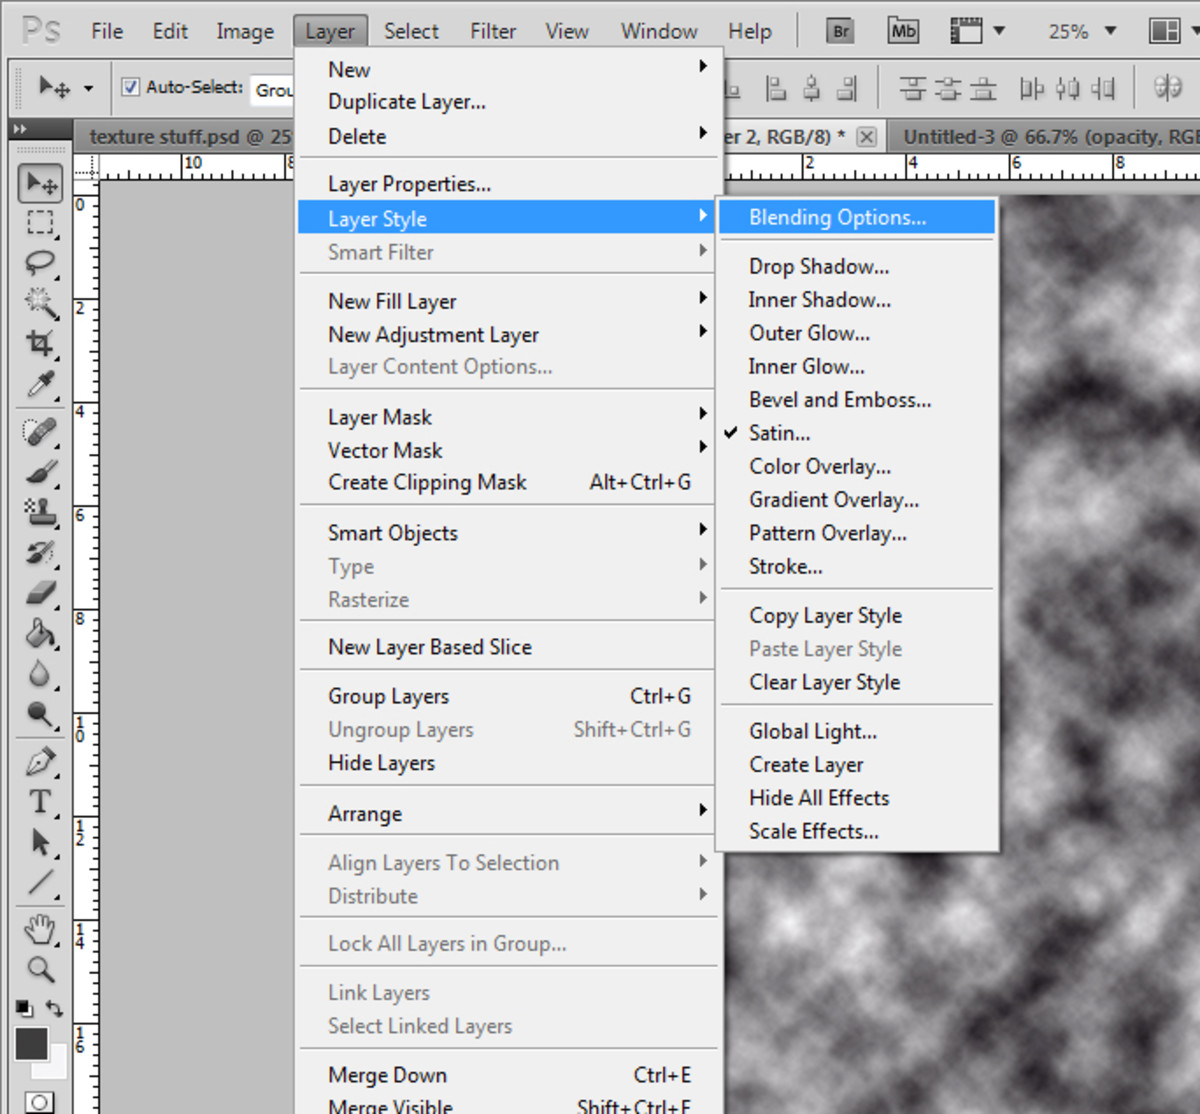 5. Access the blending options from layer-- layer style of the main menu